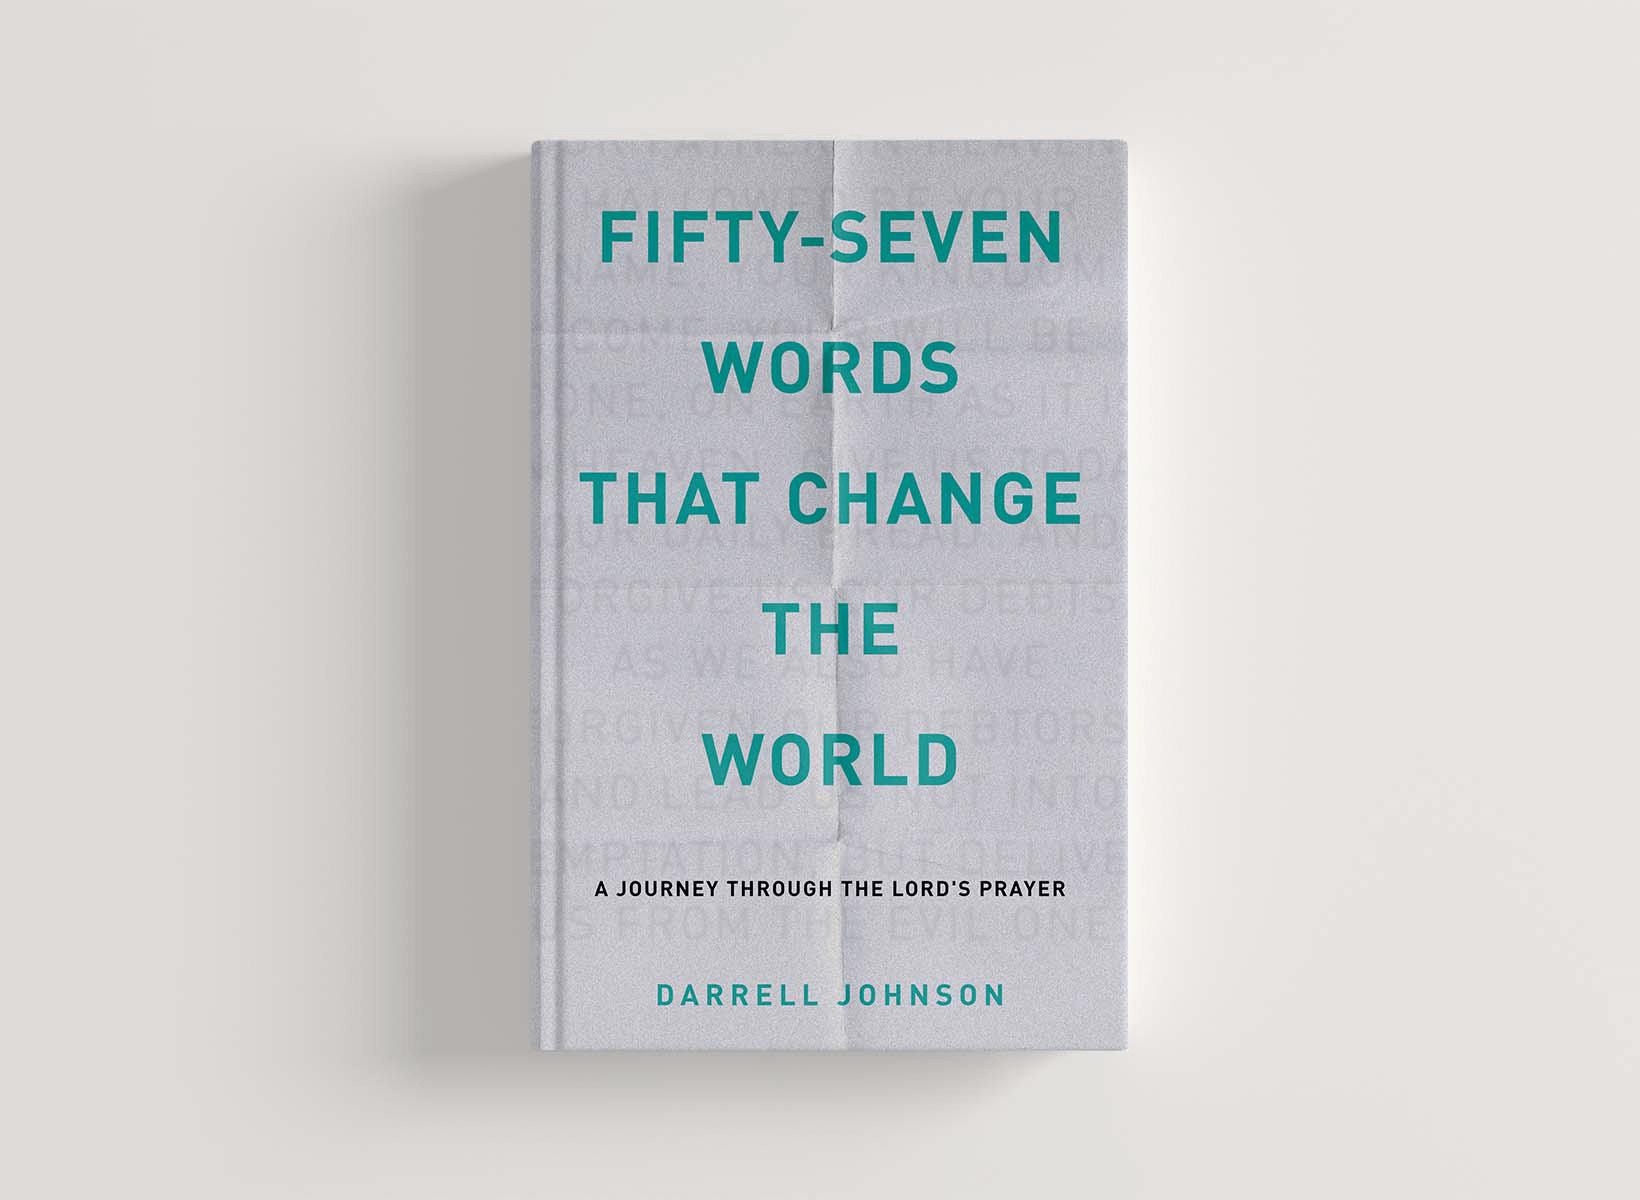 57 Words That Change the World